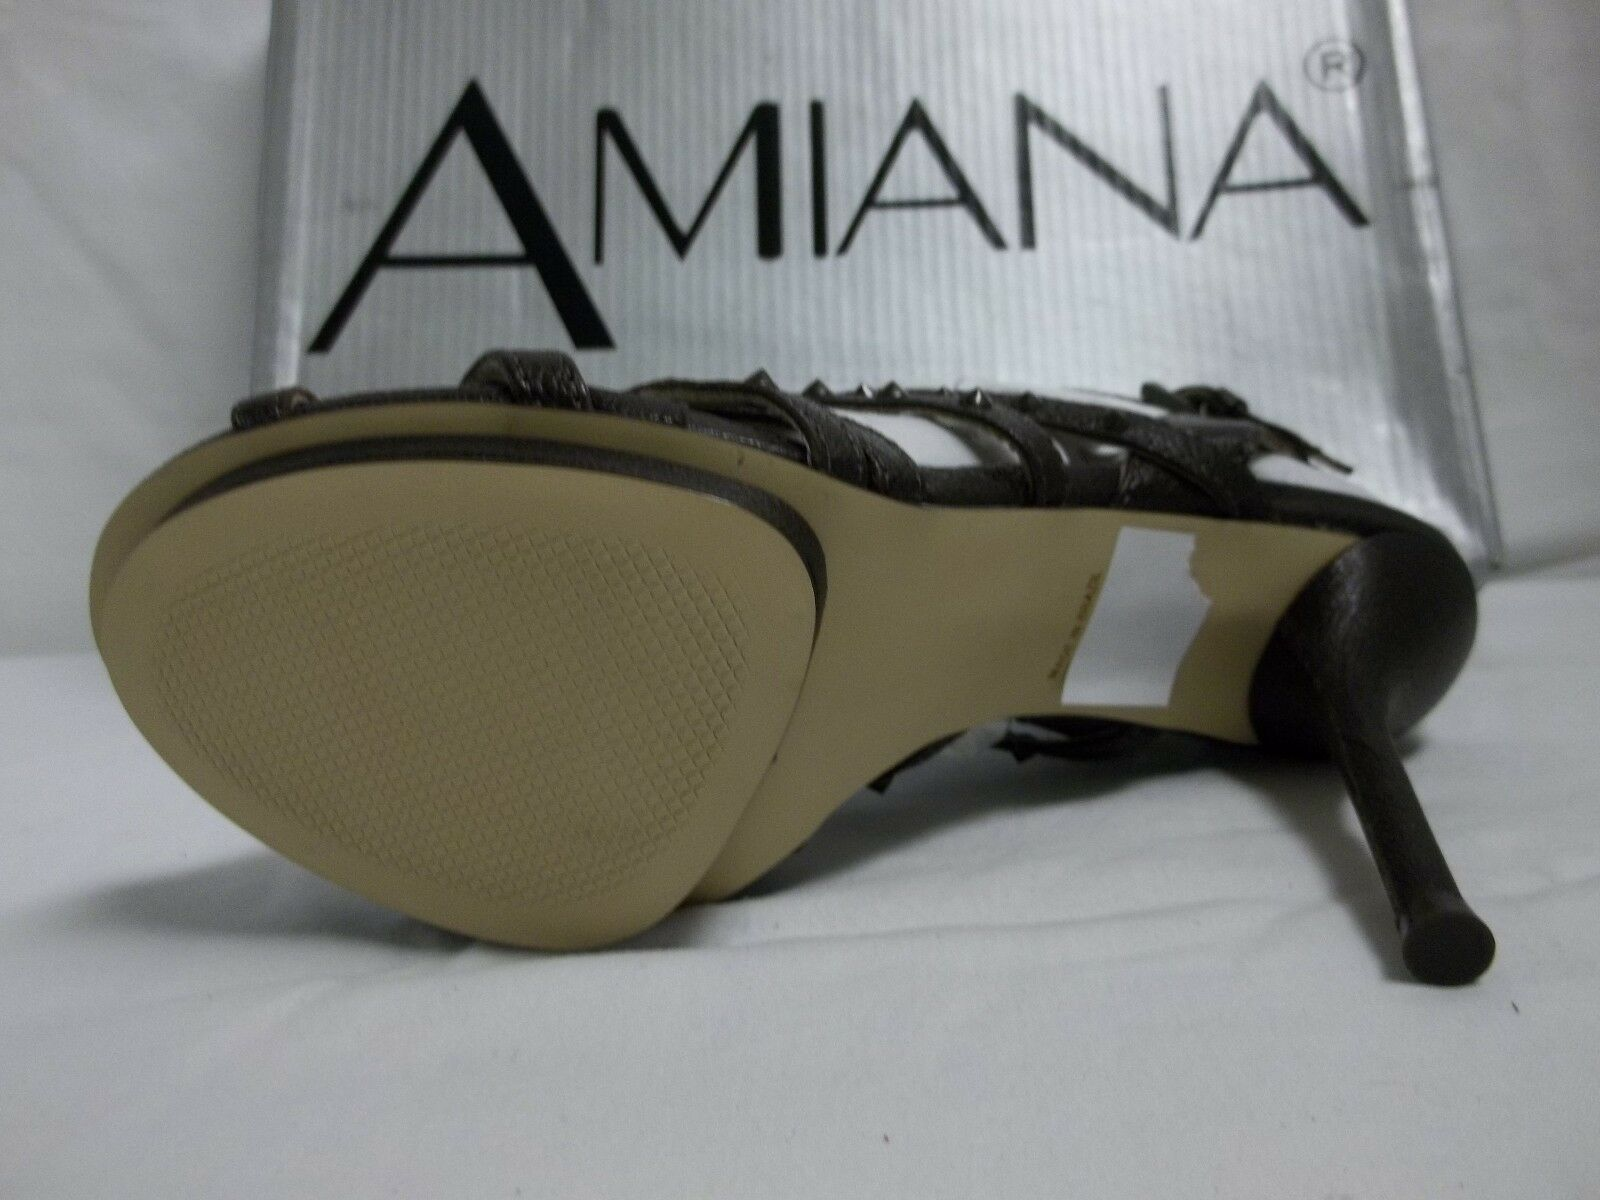 Amiana Größe 7 M Bisonte Dark Coffee Leder Open Heels Toe Heels Open New Damenschuhe Schuhes 4bcbb1